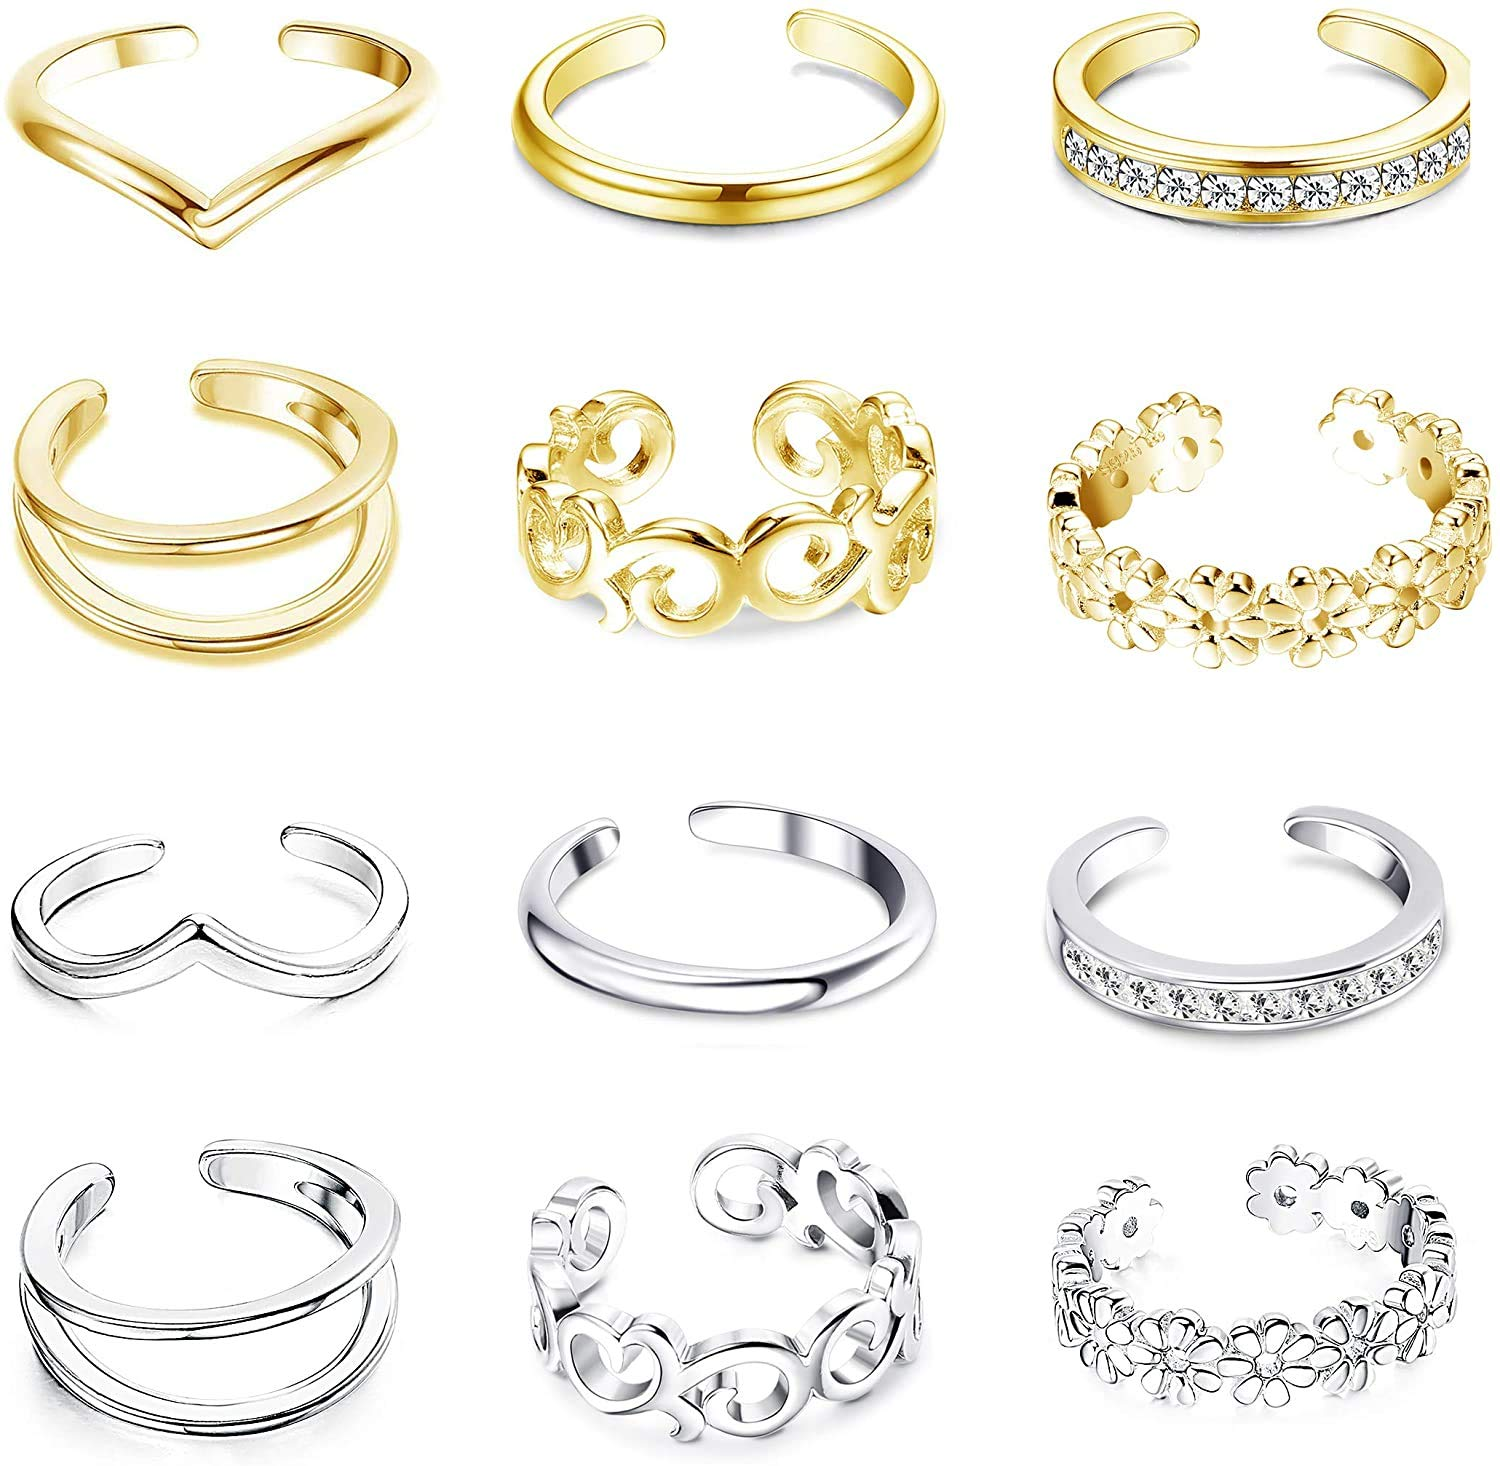 Finrezio 12PCS Toe Ring for Women Open Tail Ring Flower Knot Simple Toe Ring Adjustable Gifts Jewelry Set